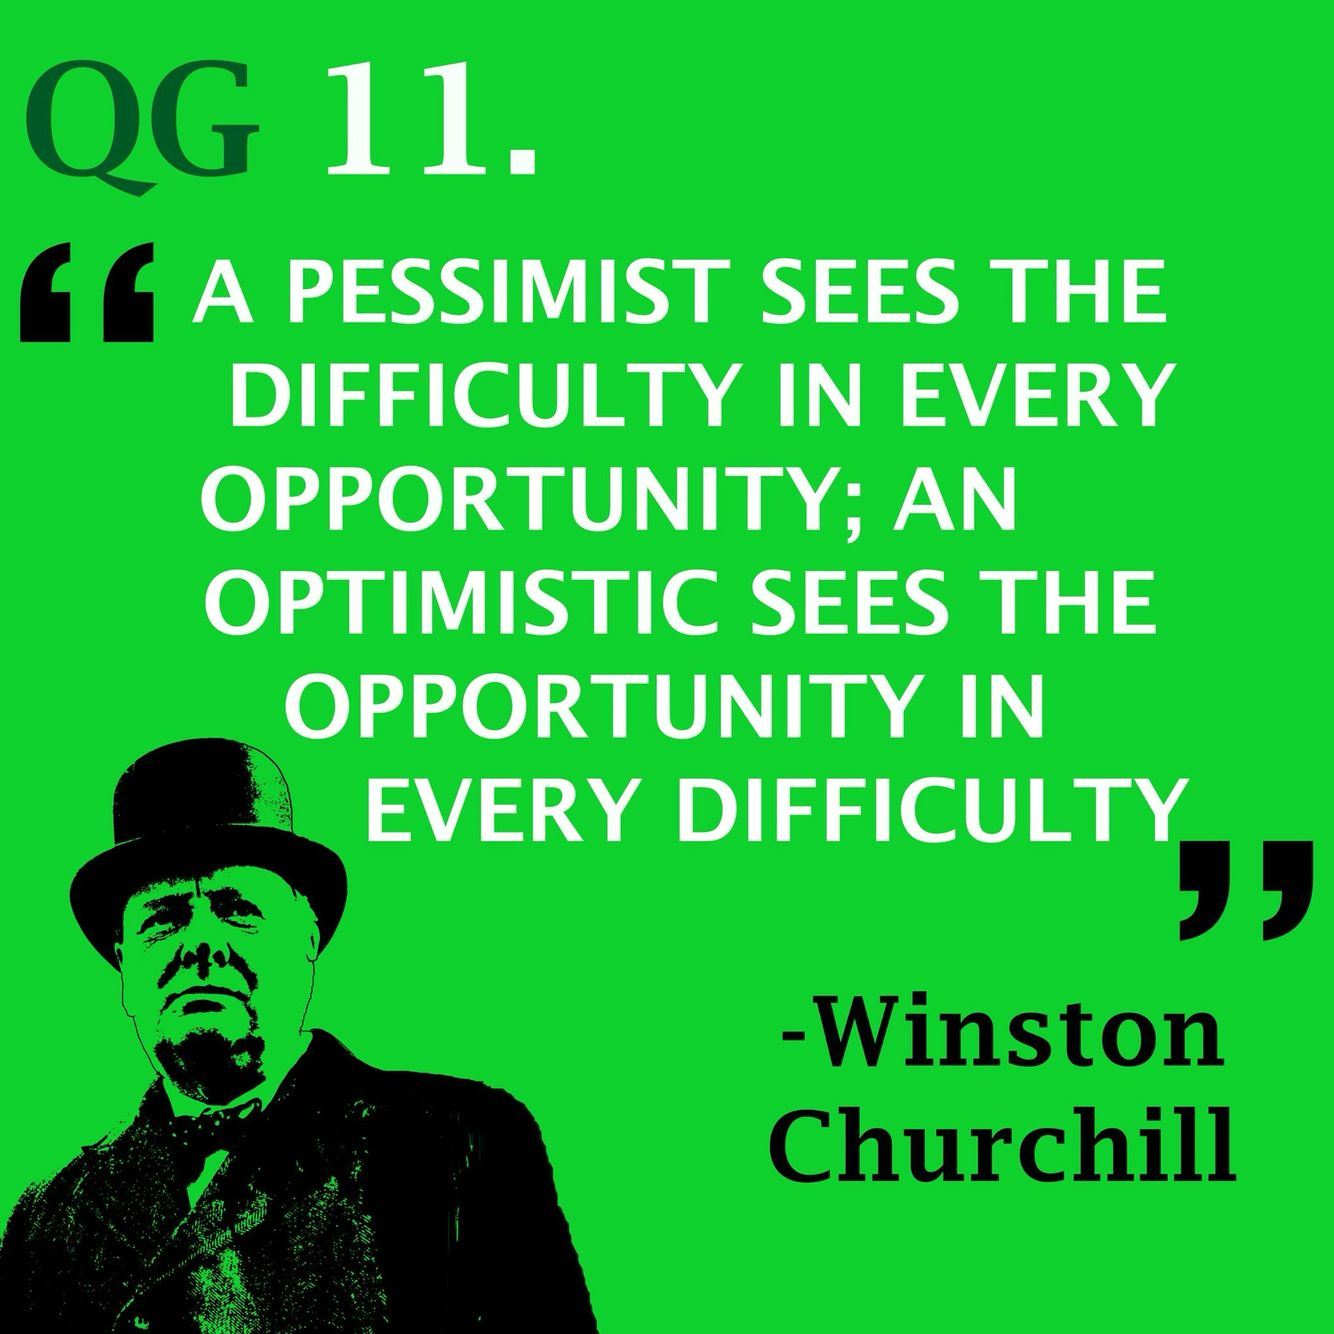 See things in a positive rather than negative manner #quote #winstonchurchill